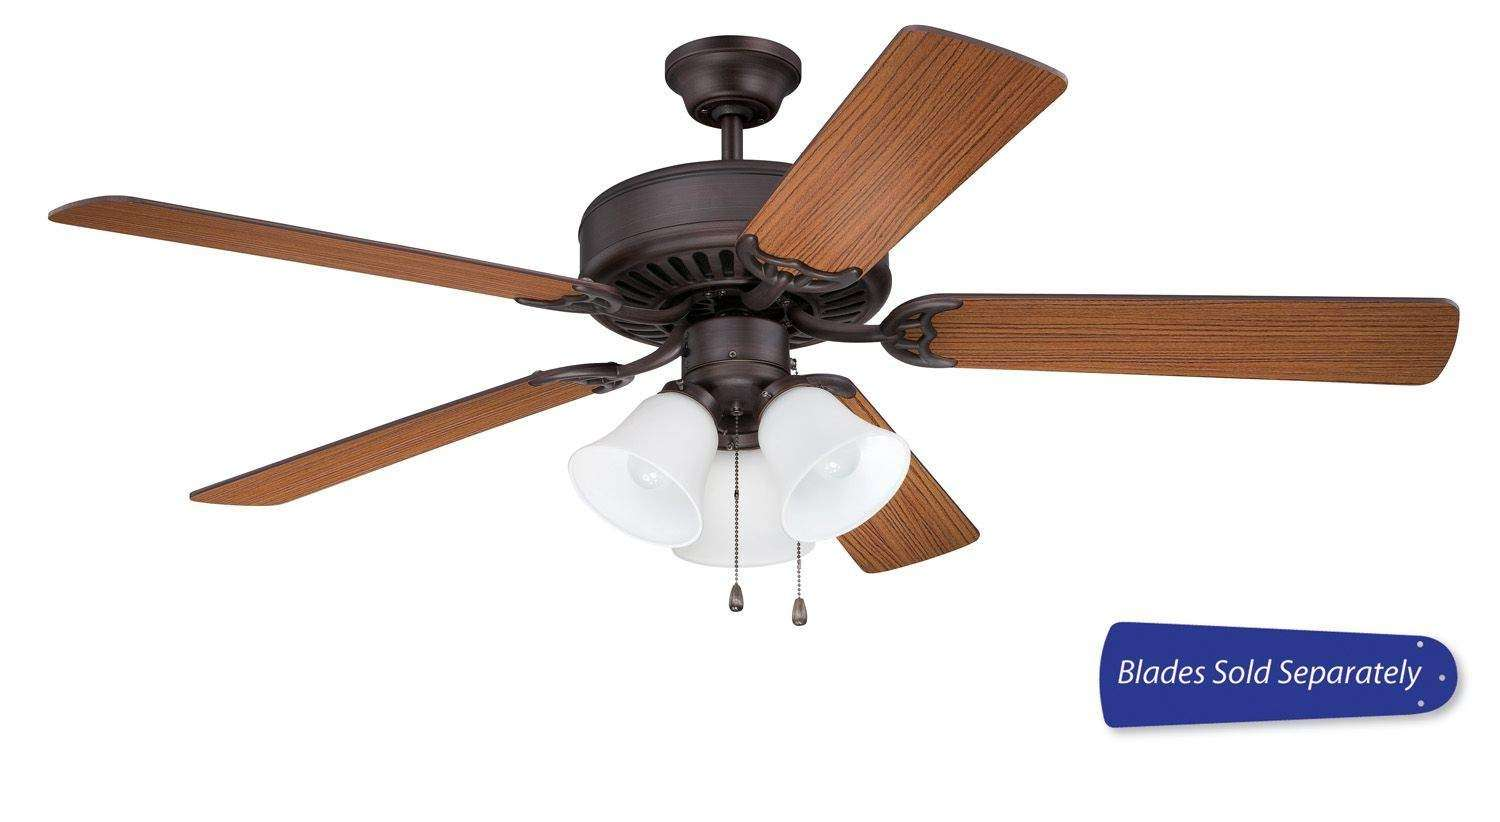 Craftmade Pro Builder 205 Ceiling Fan Model CF-C205FB in Flat Black